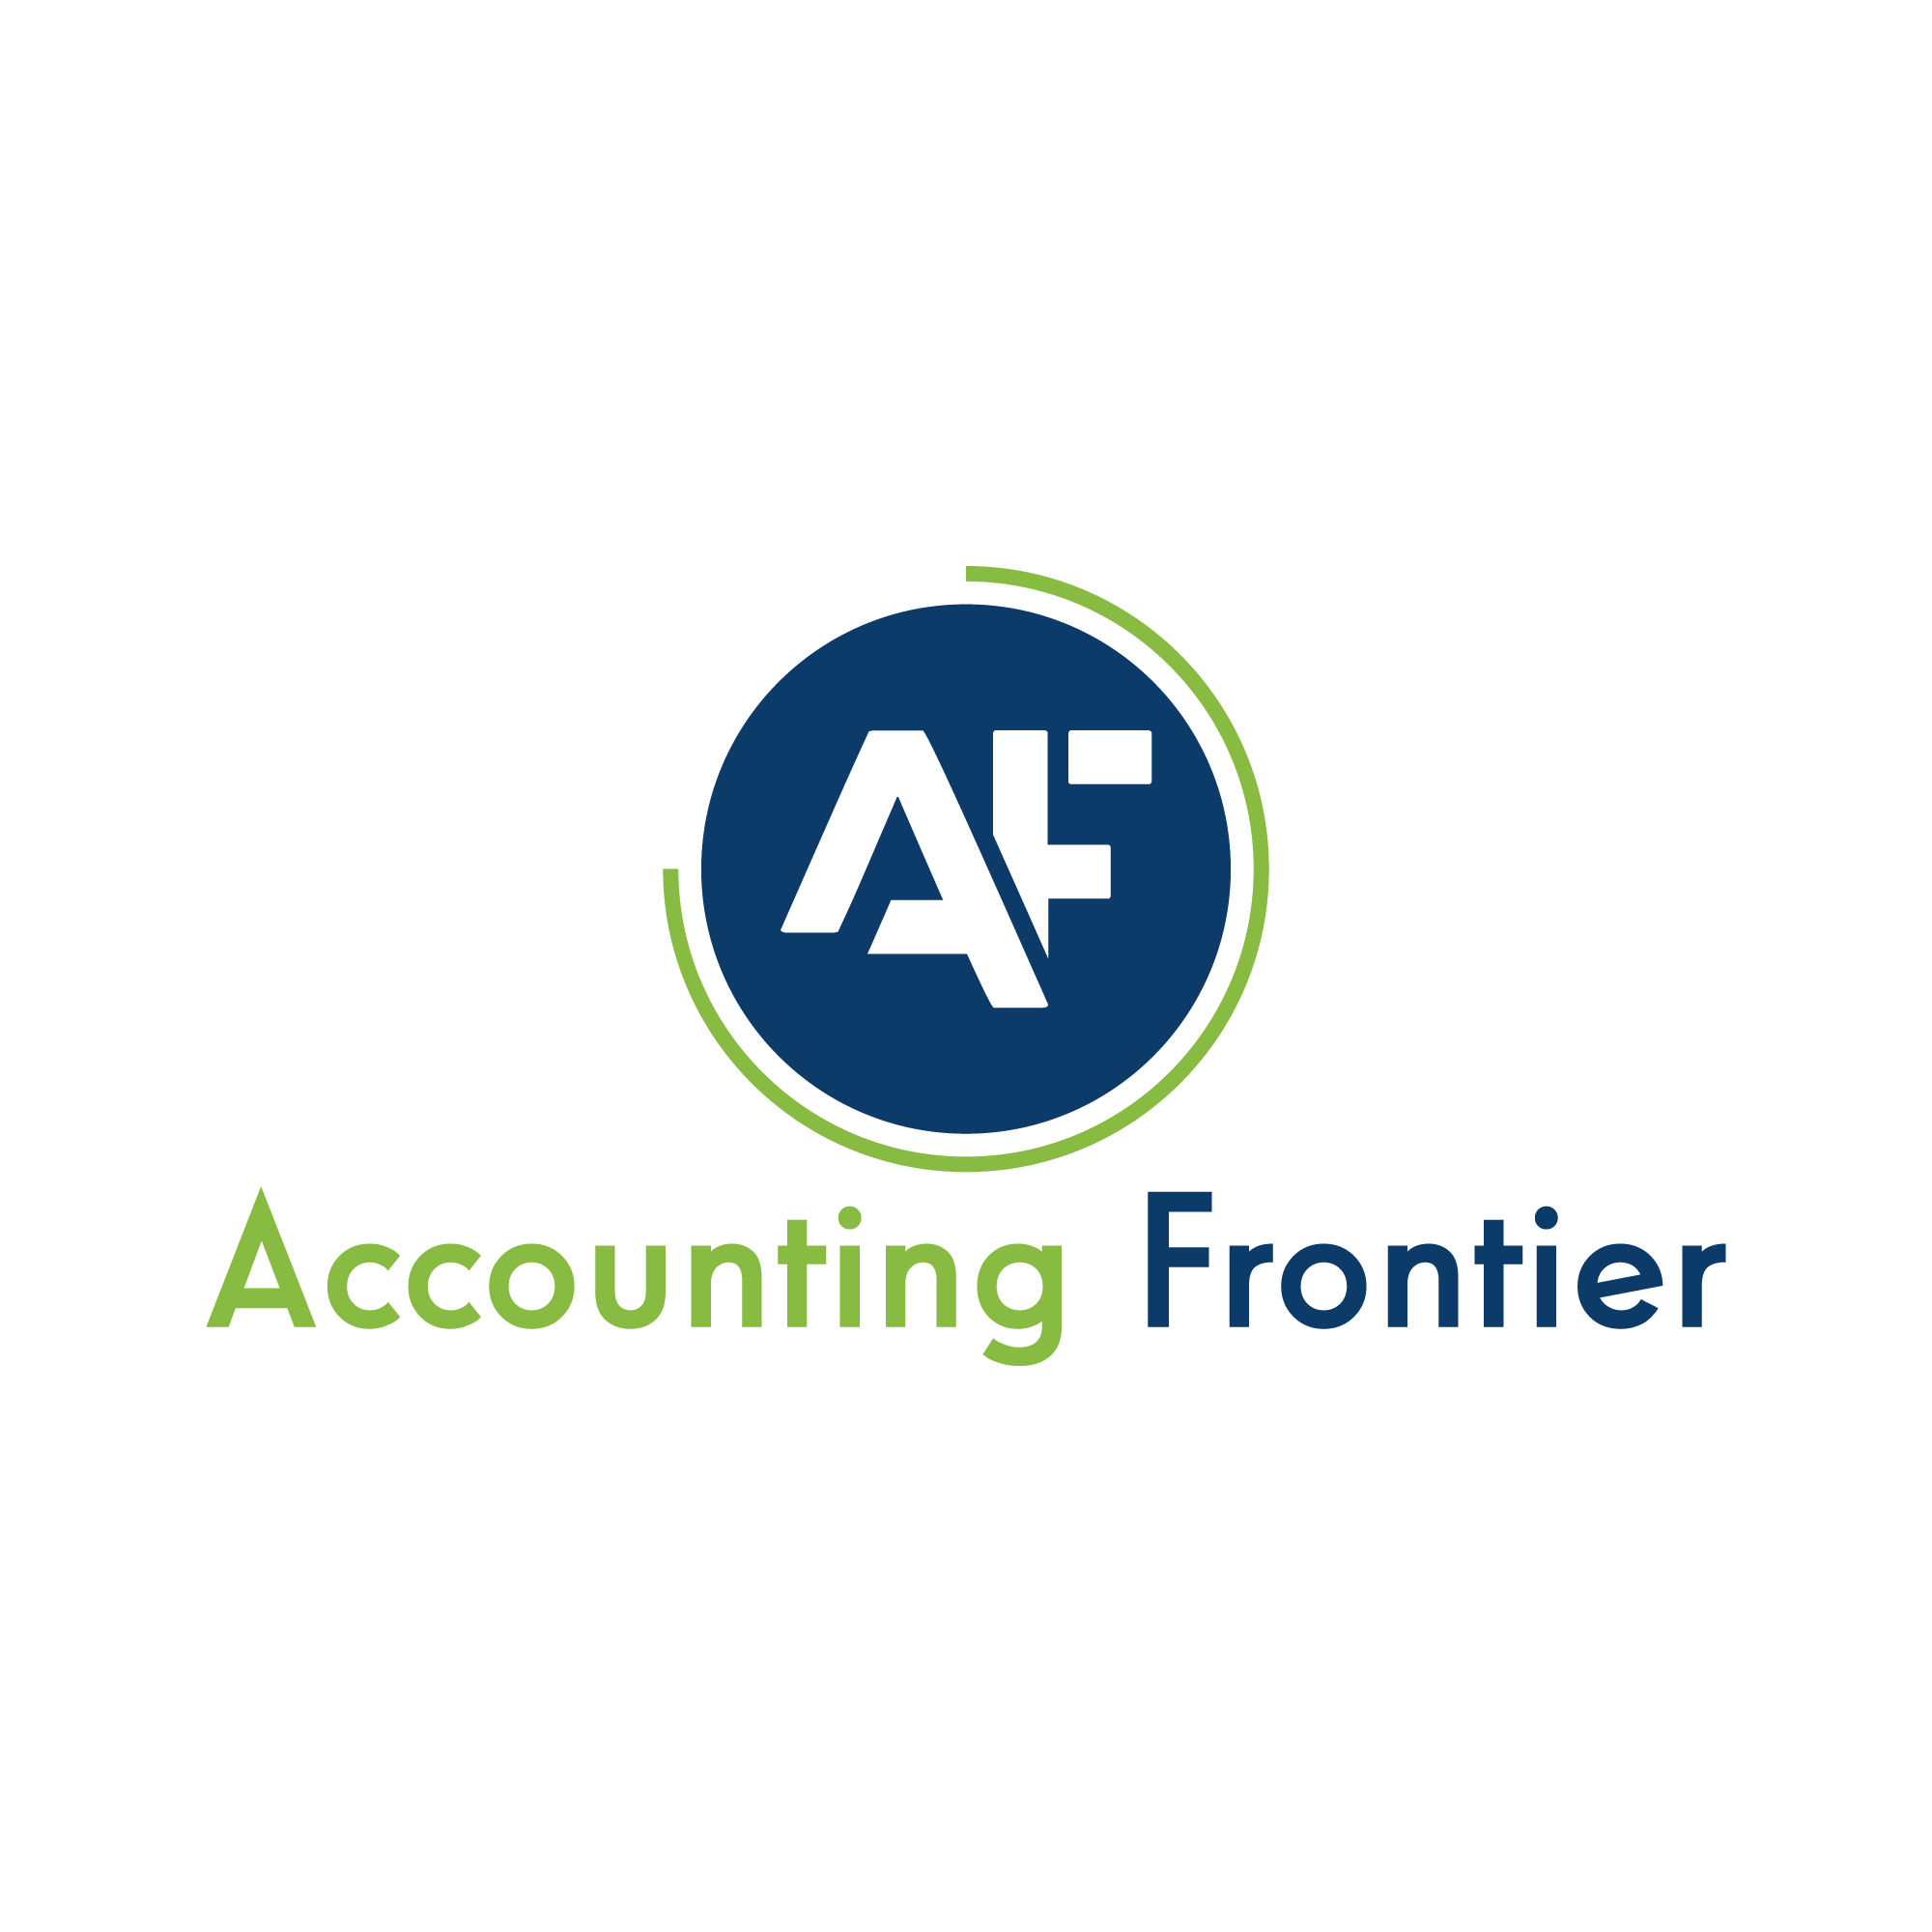 Accounting Frontier